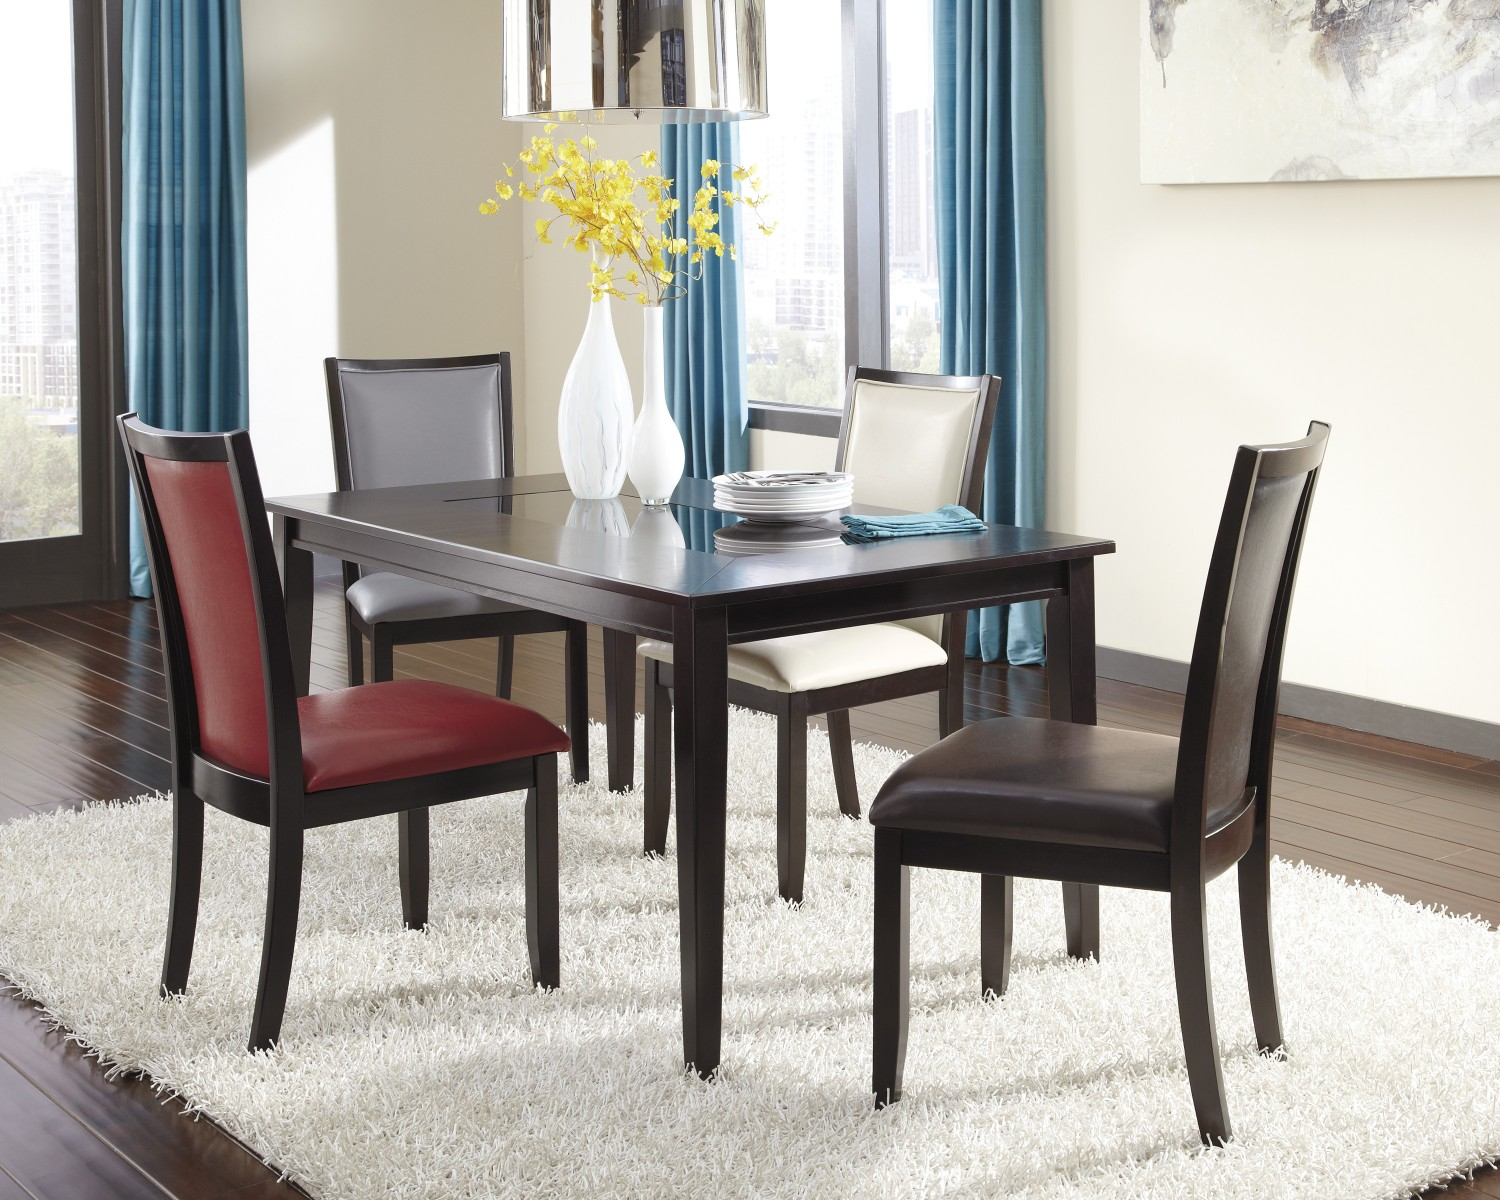 Ashley Furniture Dining Room Sets Finest Kitchen Large Dining Room Table Ashley Furniture Sets